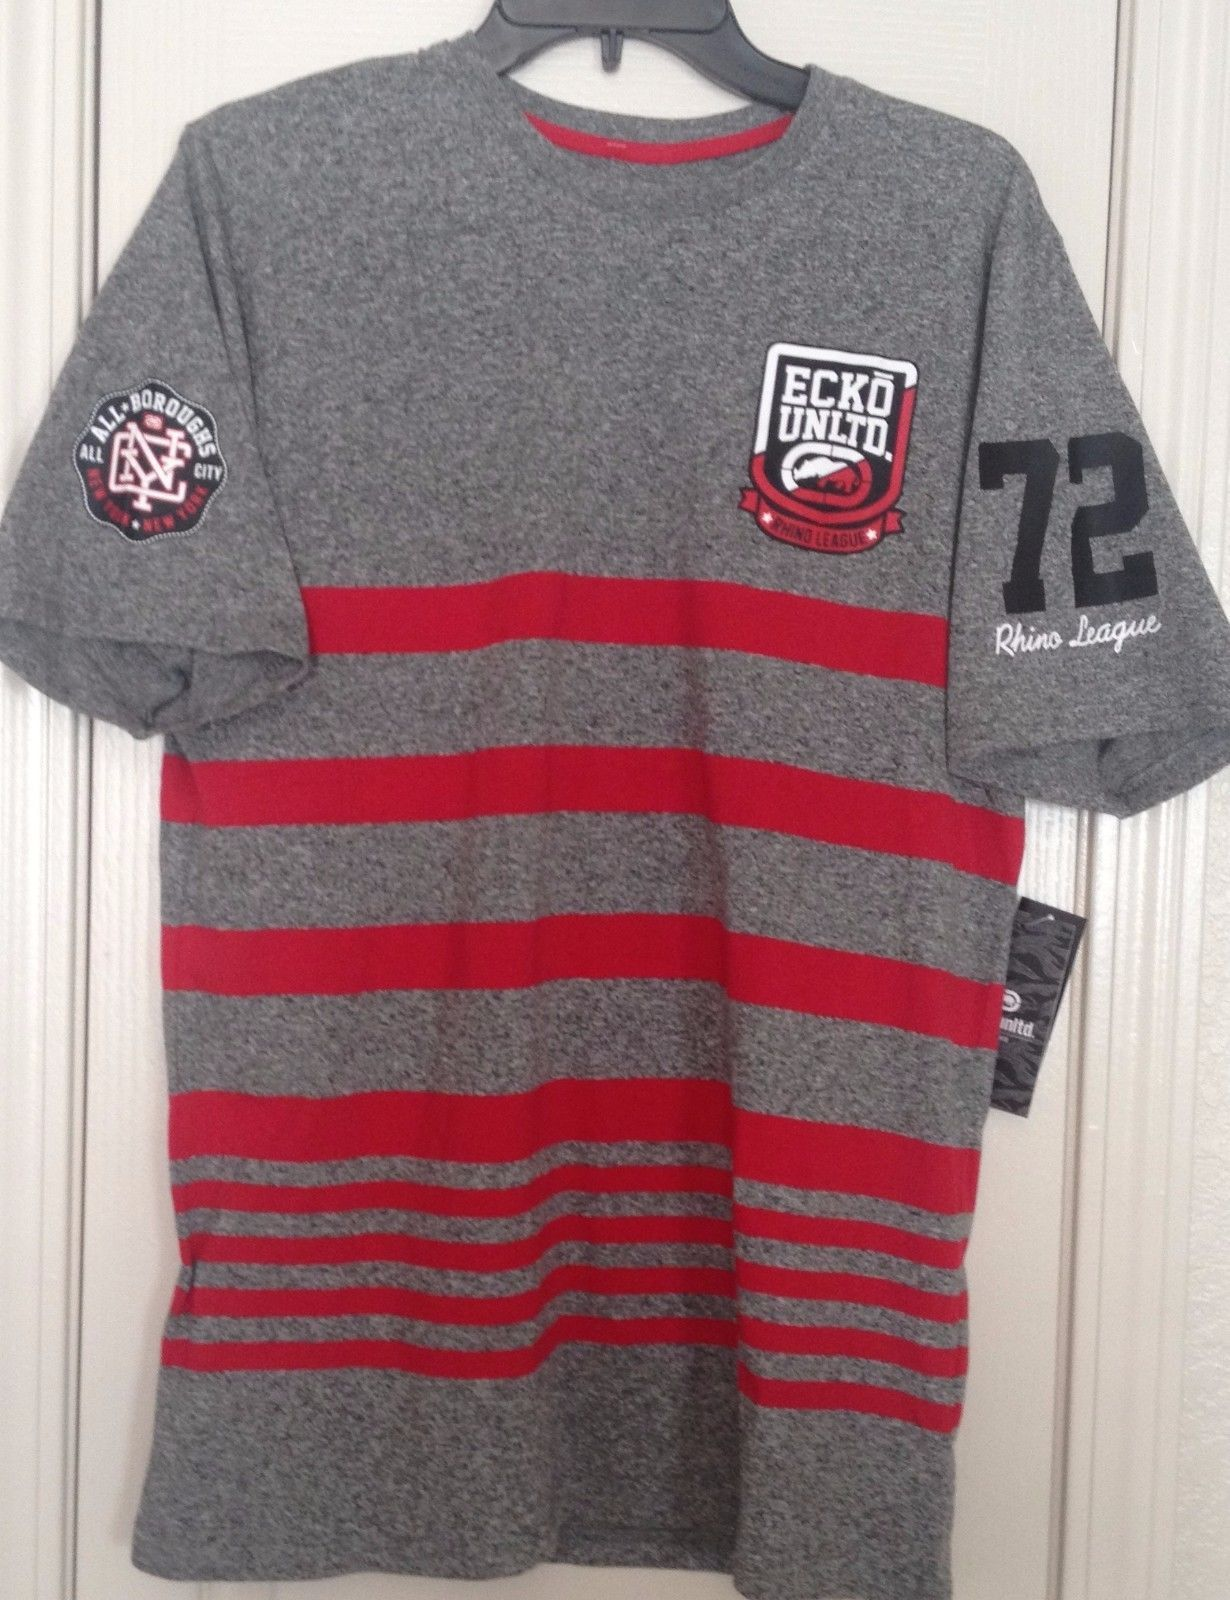 56a038a72 57. 57. Previous. Ecko Unlimited Men's Short Sleeve Red Gray Striped Tee  Shirt Size M